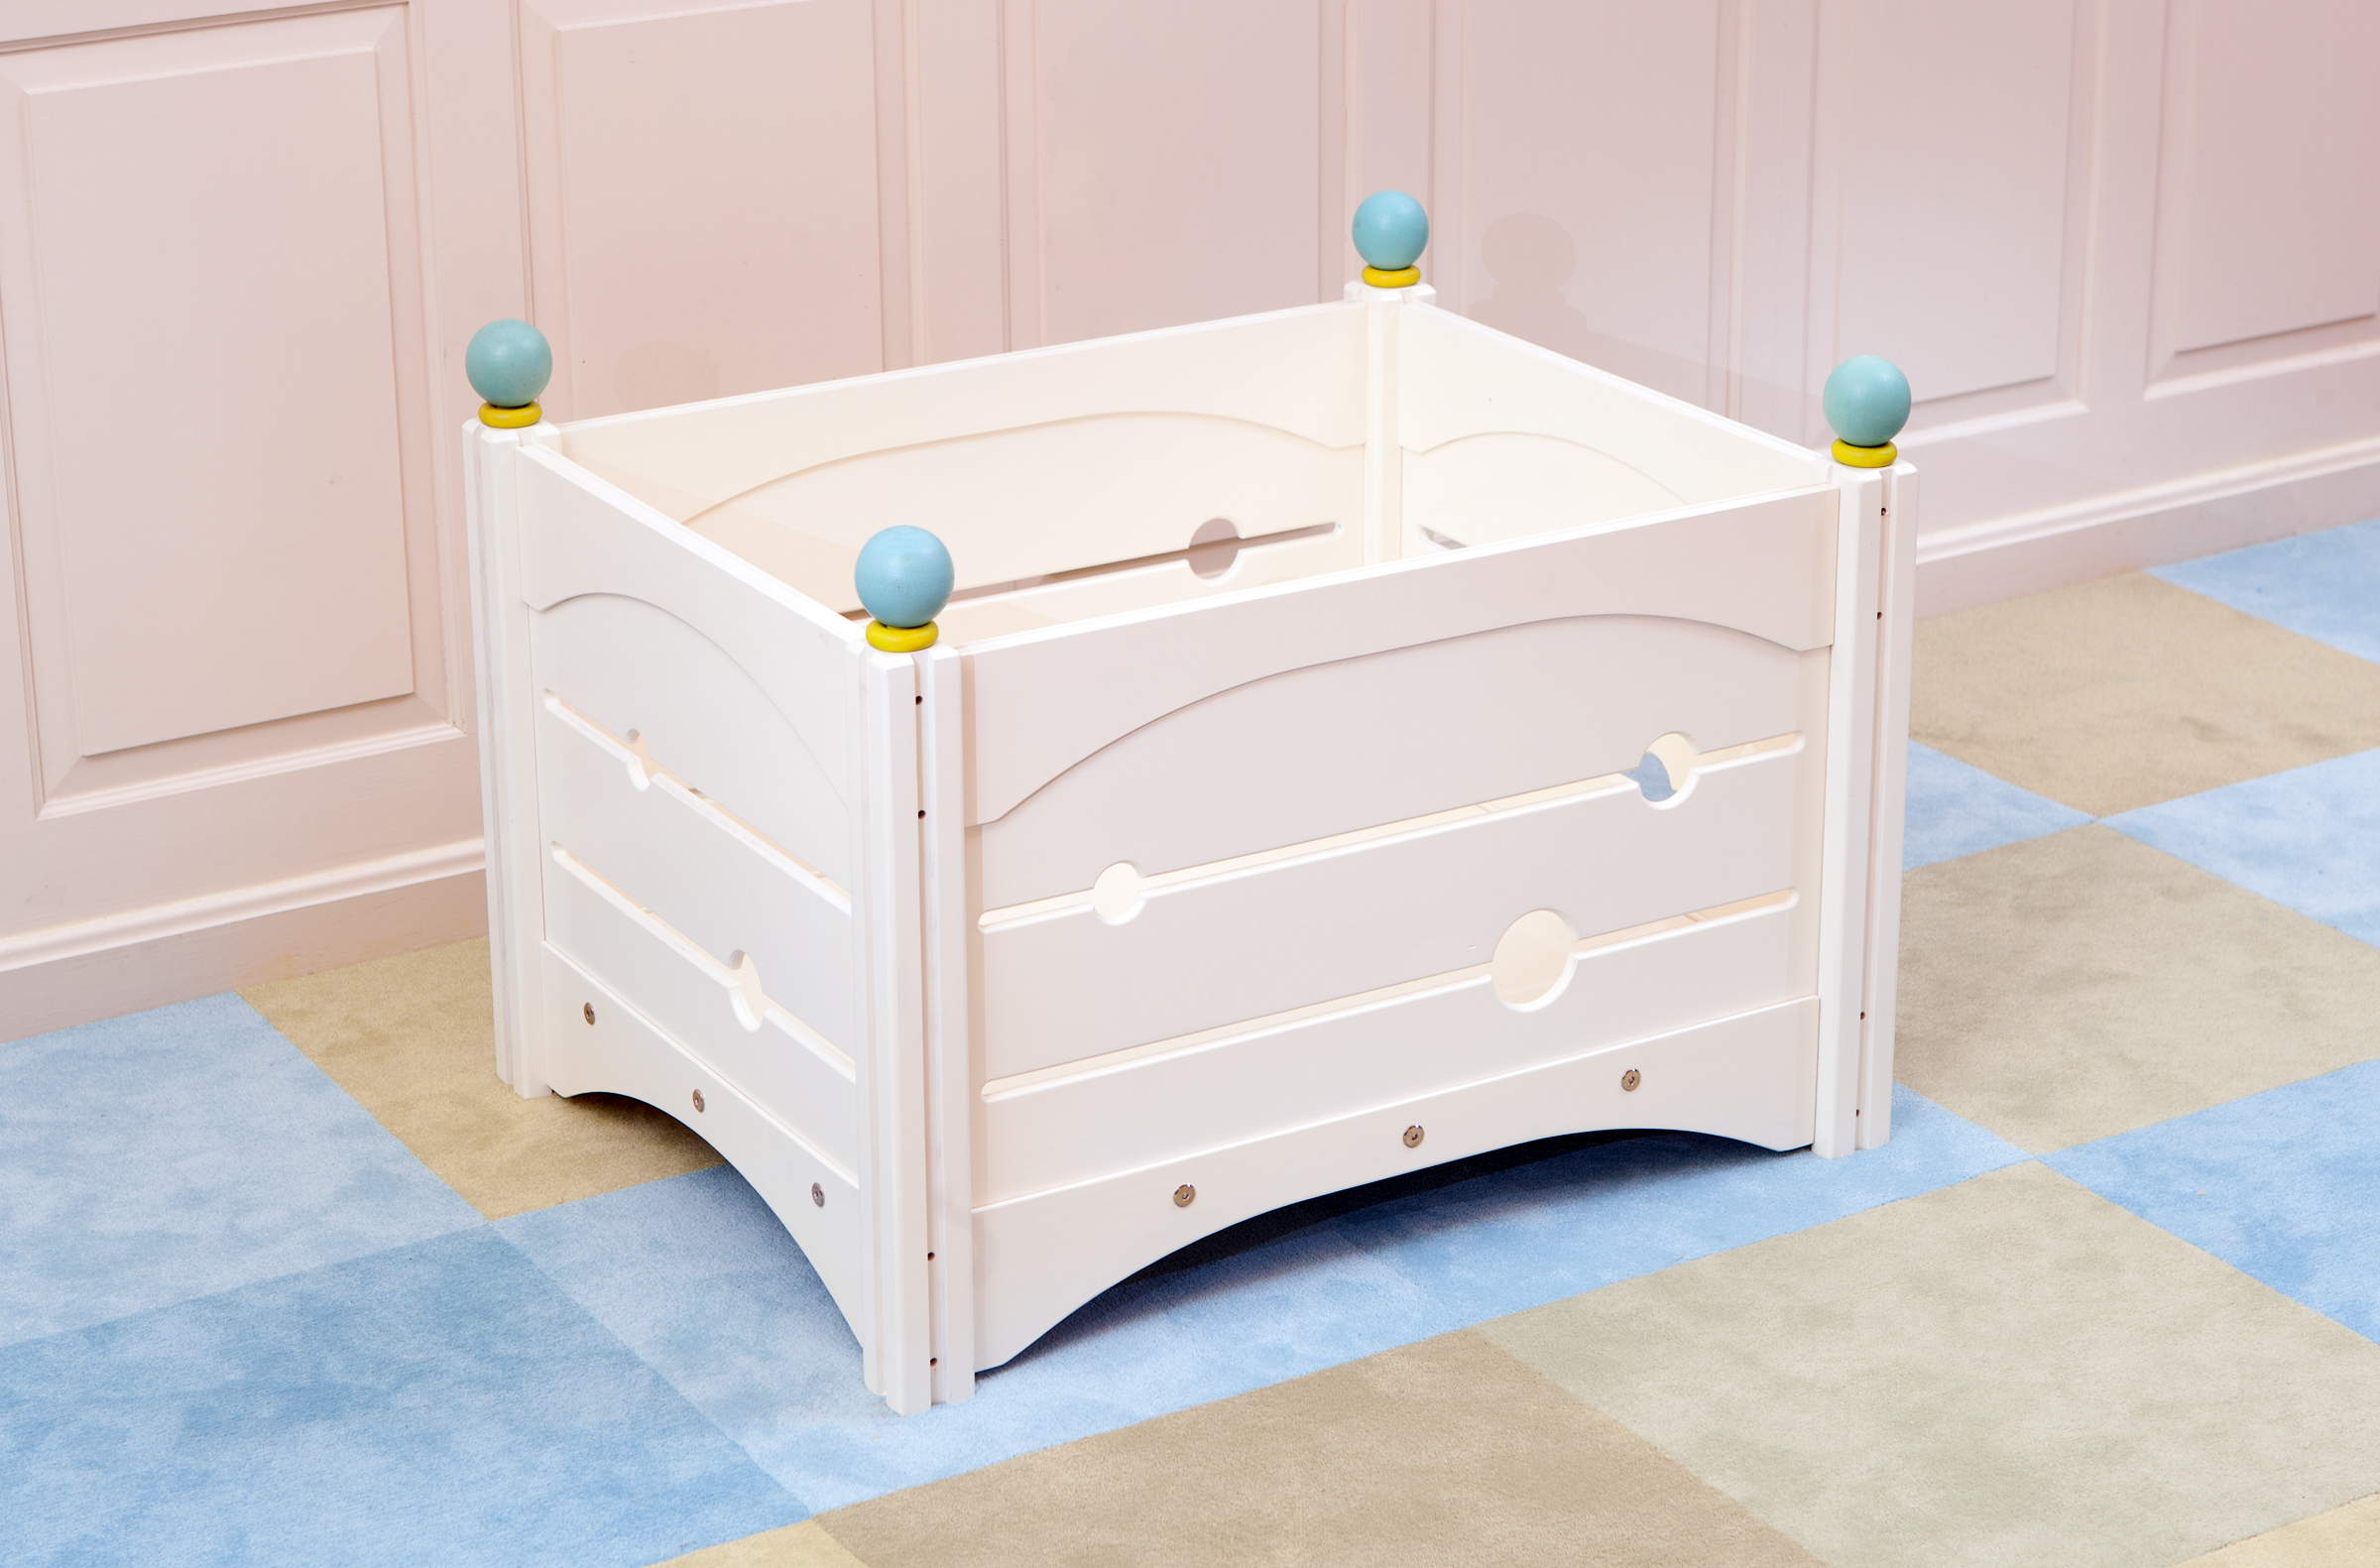 Fe Guide Building Make Your Own Toy Box Plans: build your own toy chest